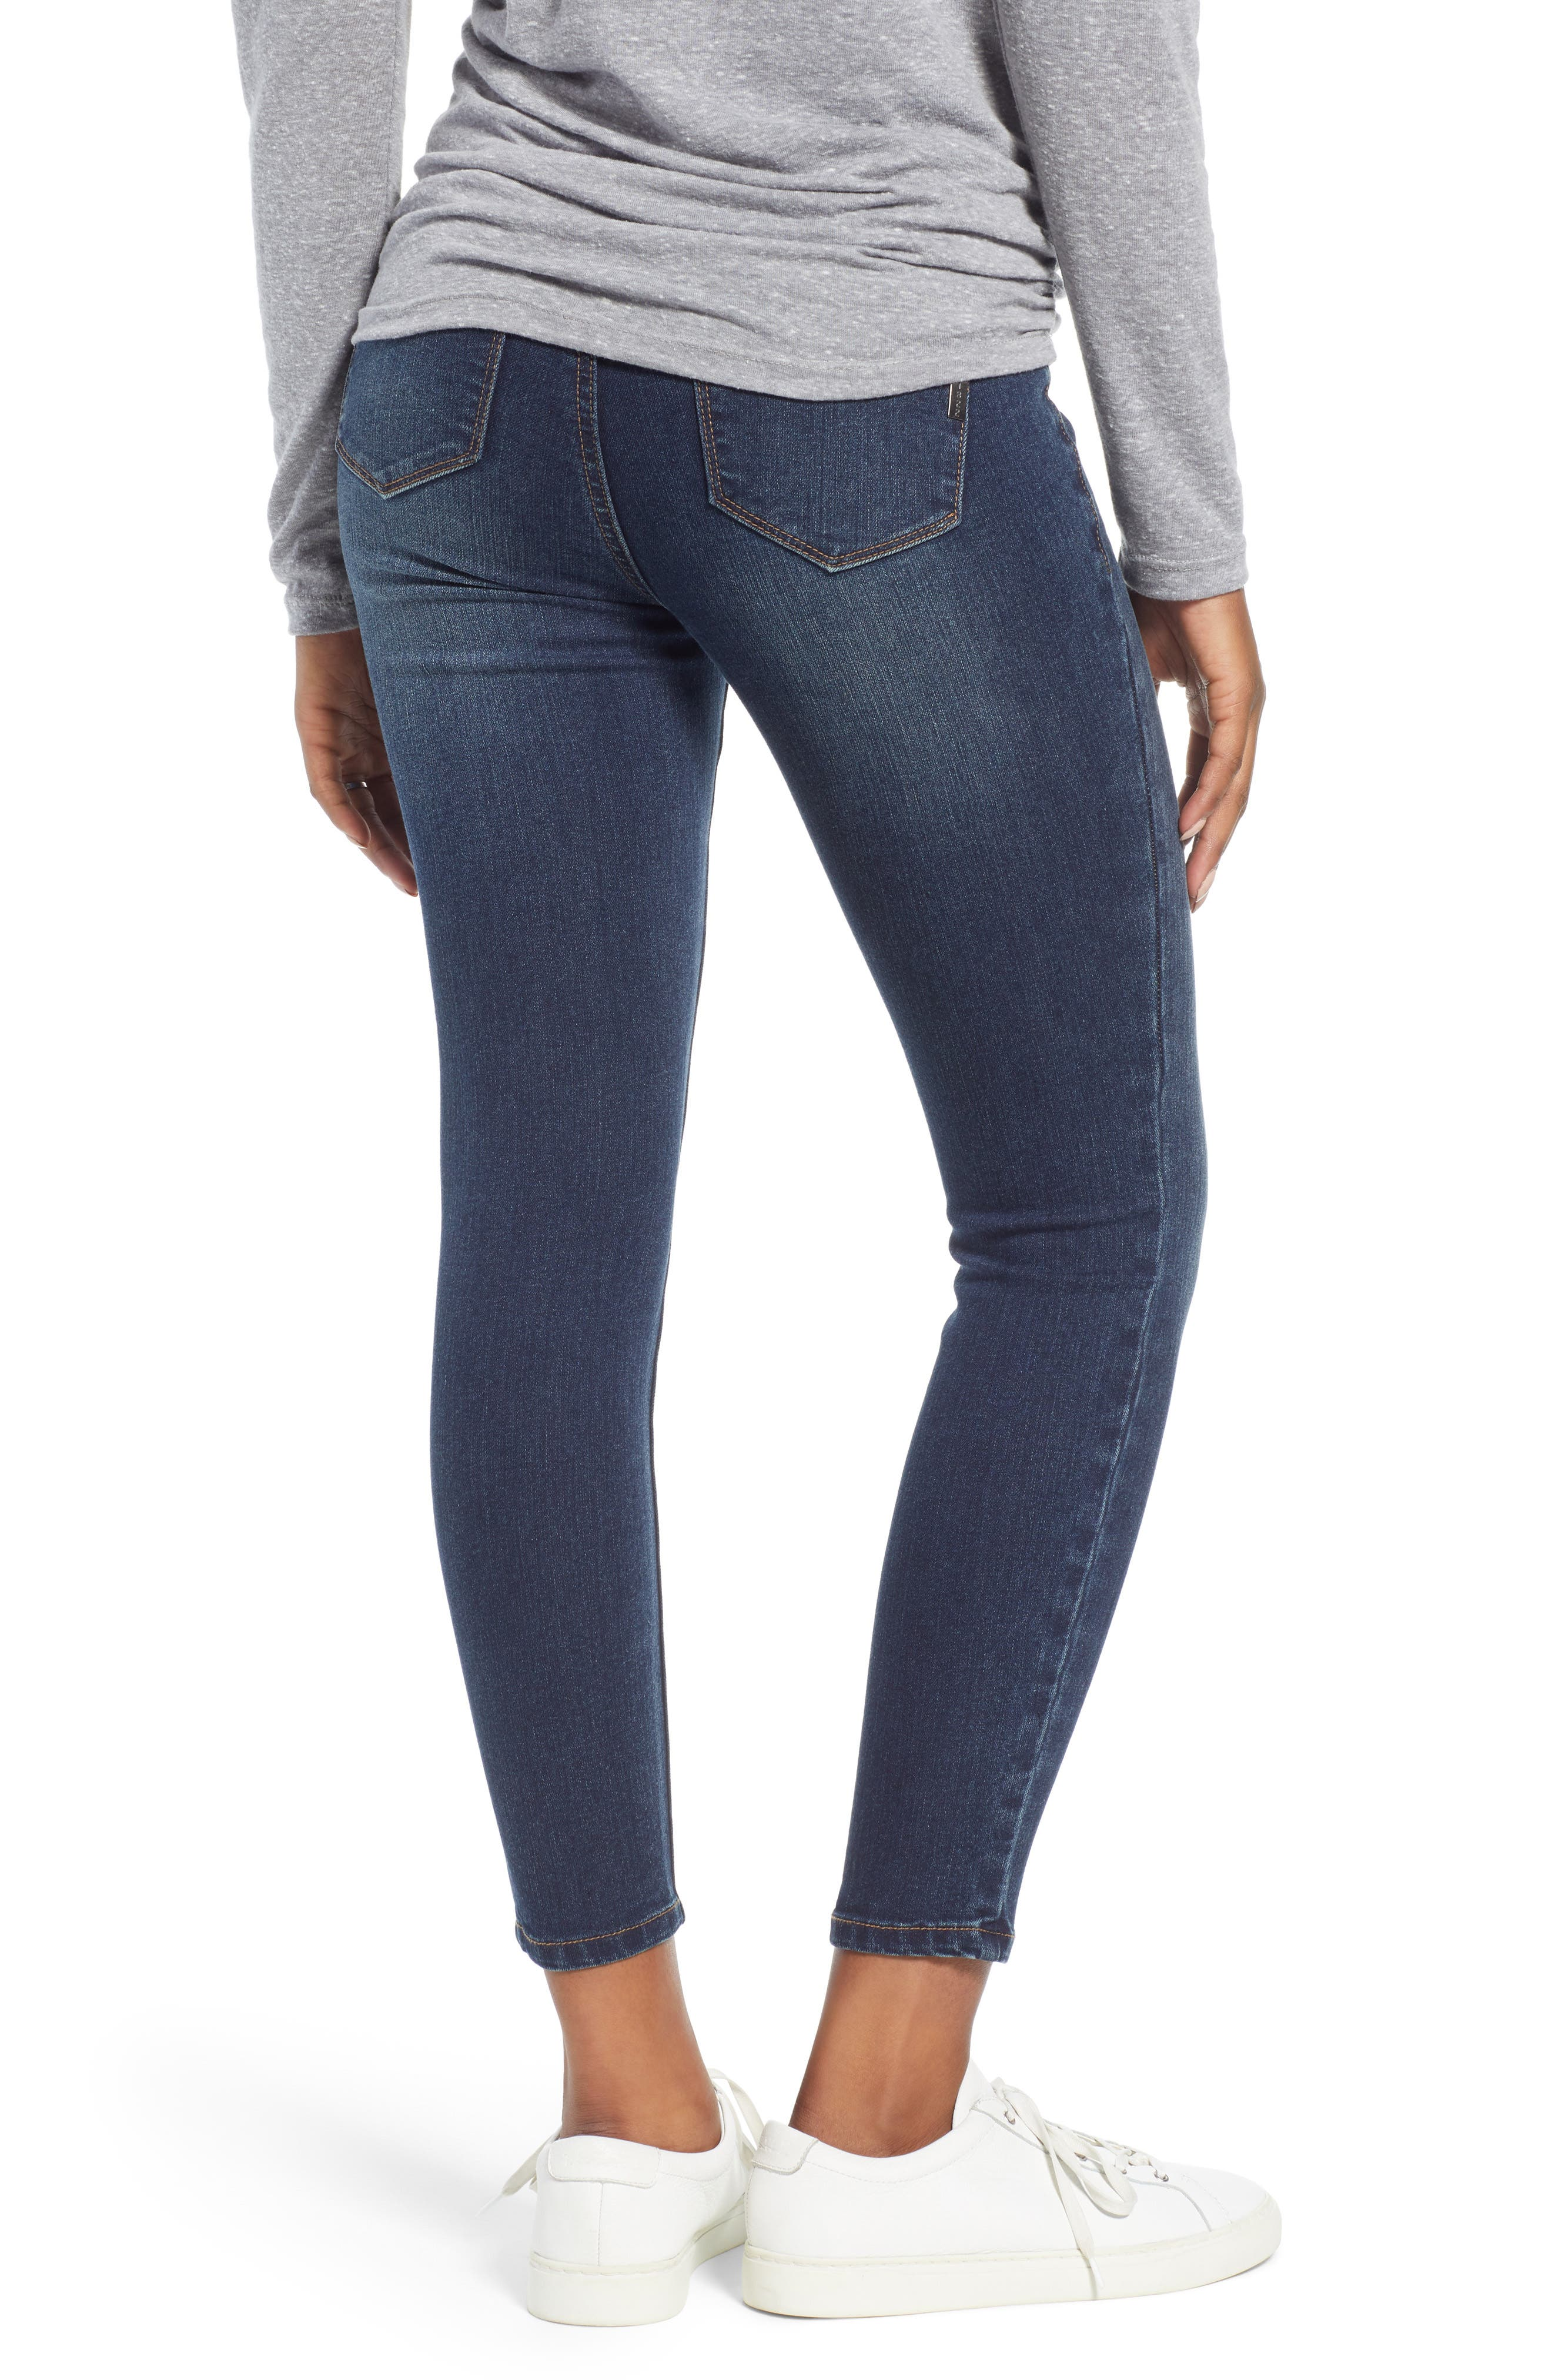 Ankle Skinny Maternity Jeans,                             Alternate thumbnail 2, color,                             406